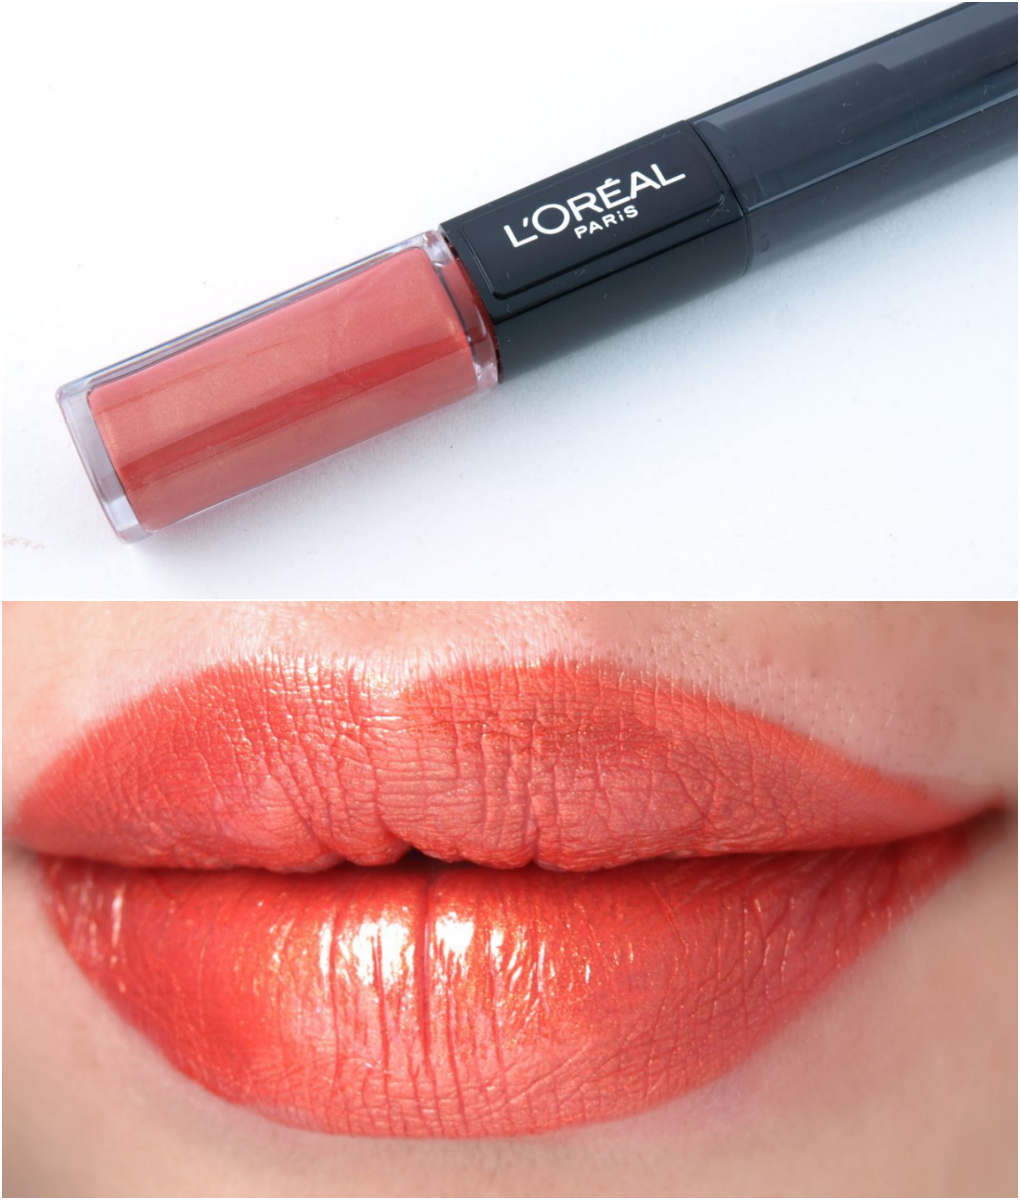 L'Oreal Infallible 2-Step Lipcolor: Review and Swatches Perpetual Apricot